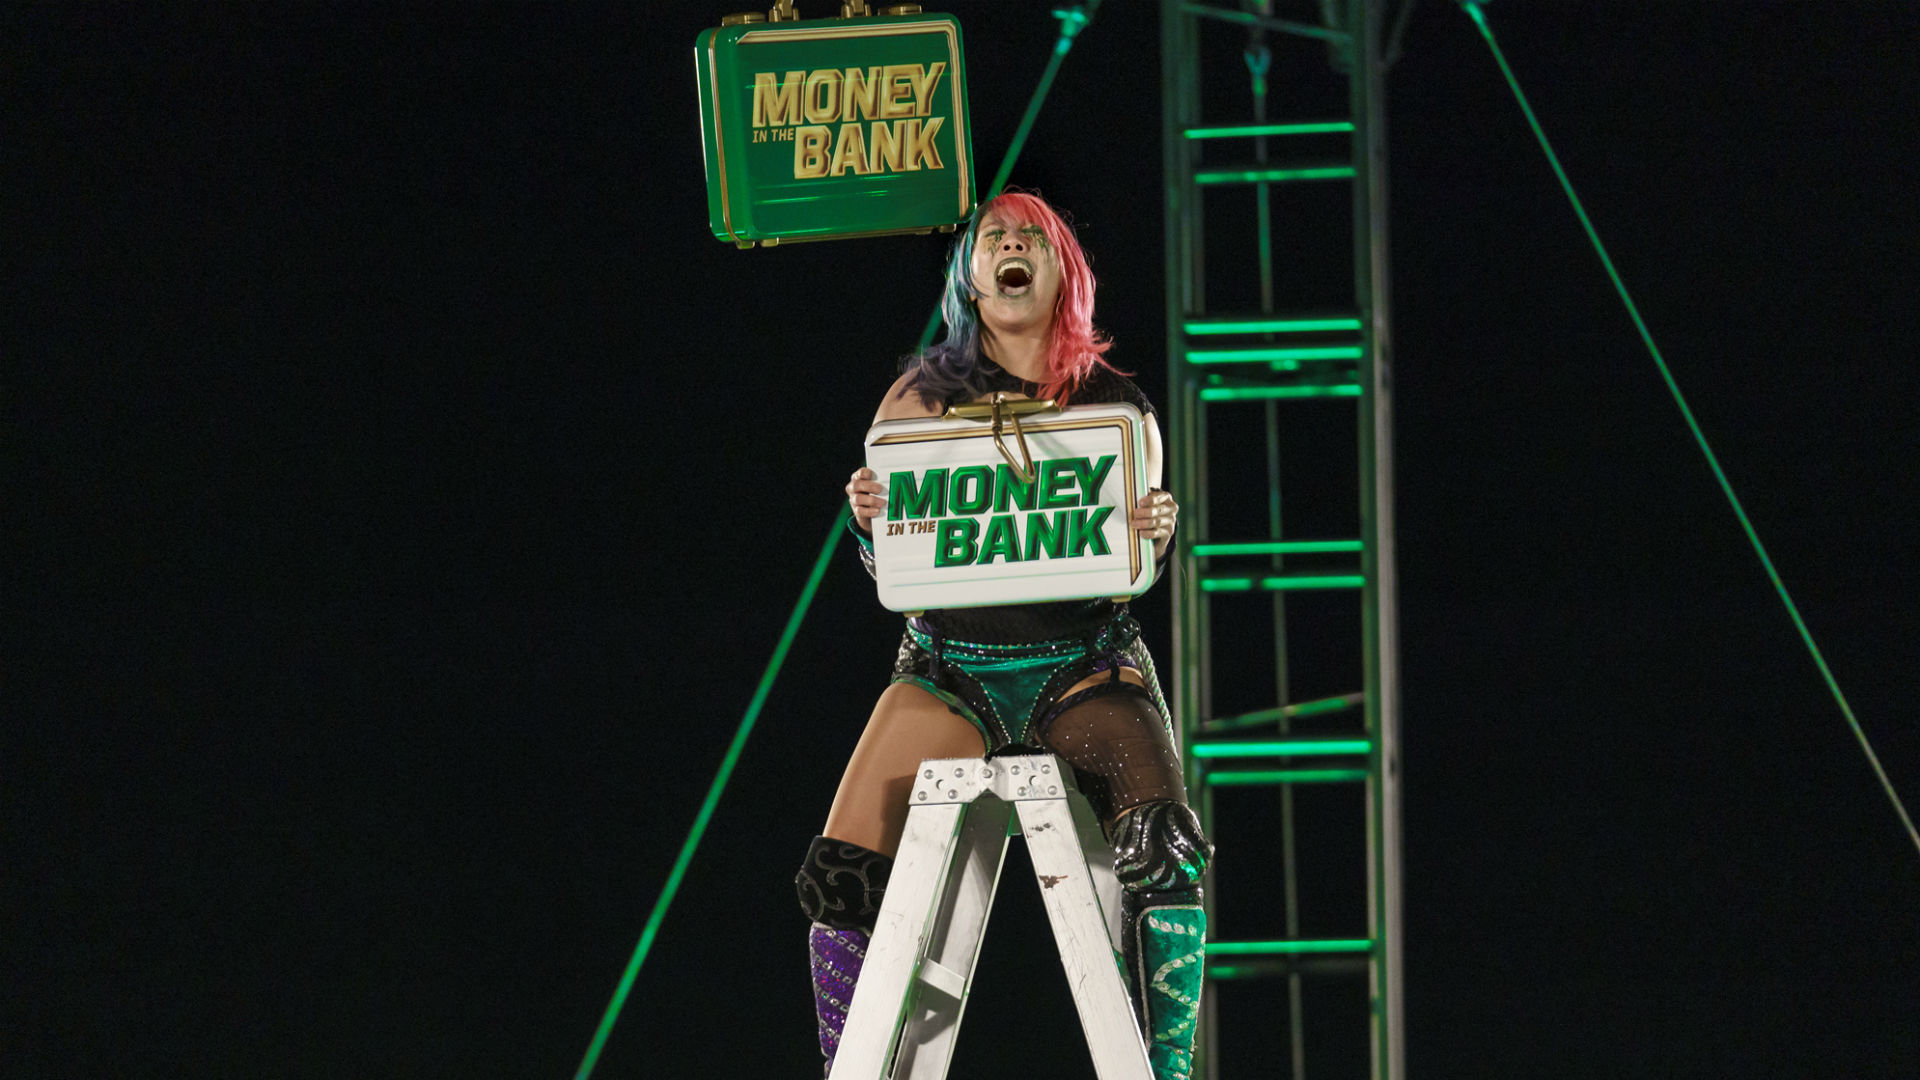 WWE Money In The Bank 2020 results: Otis and Asuka win briefcases in utterly ridiculous ladder match